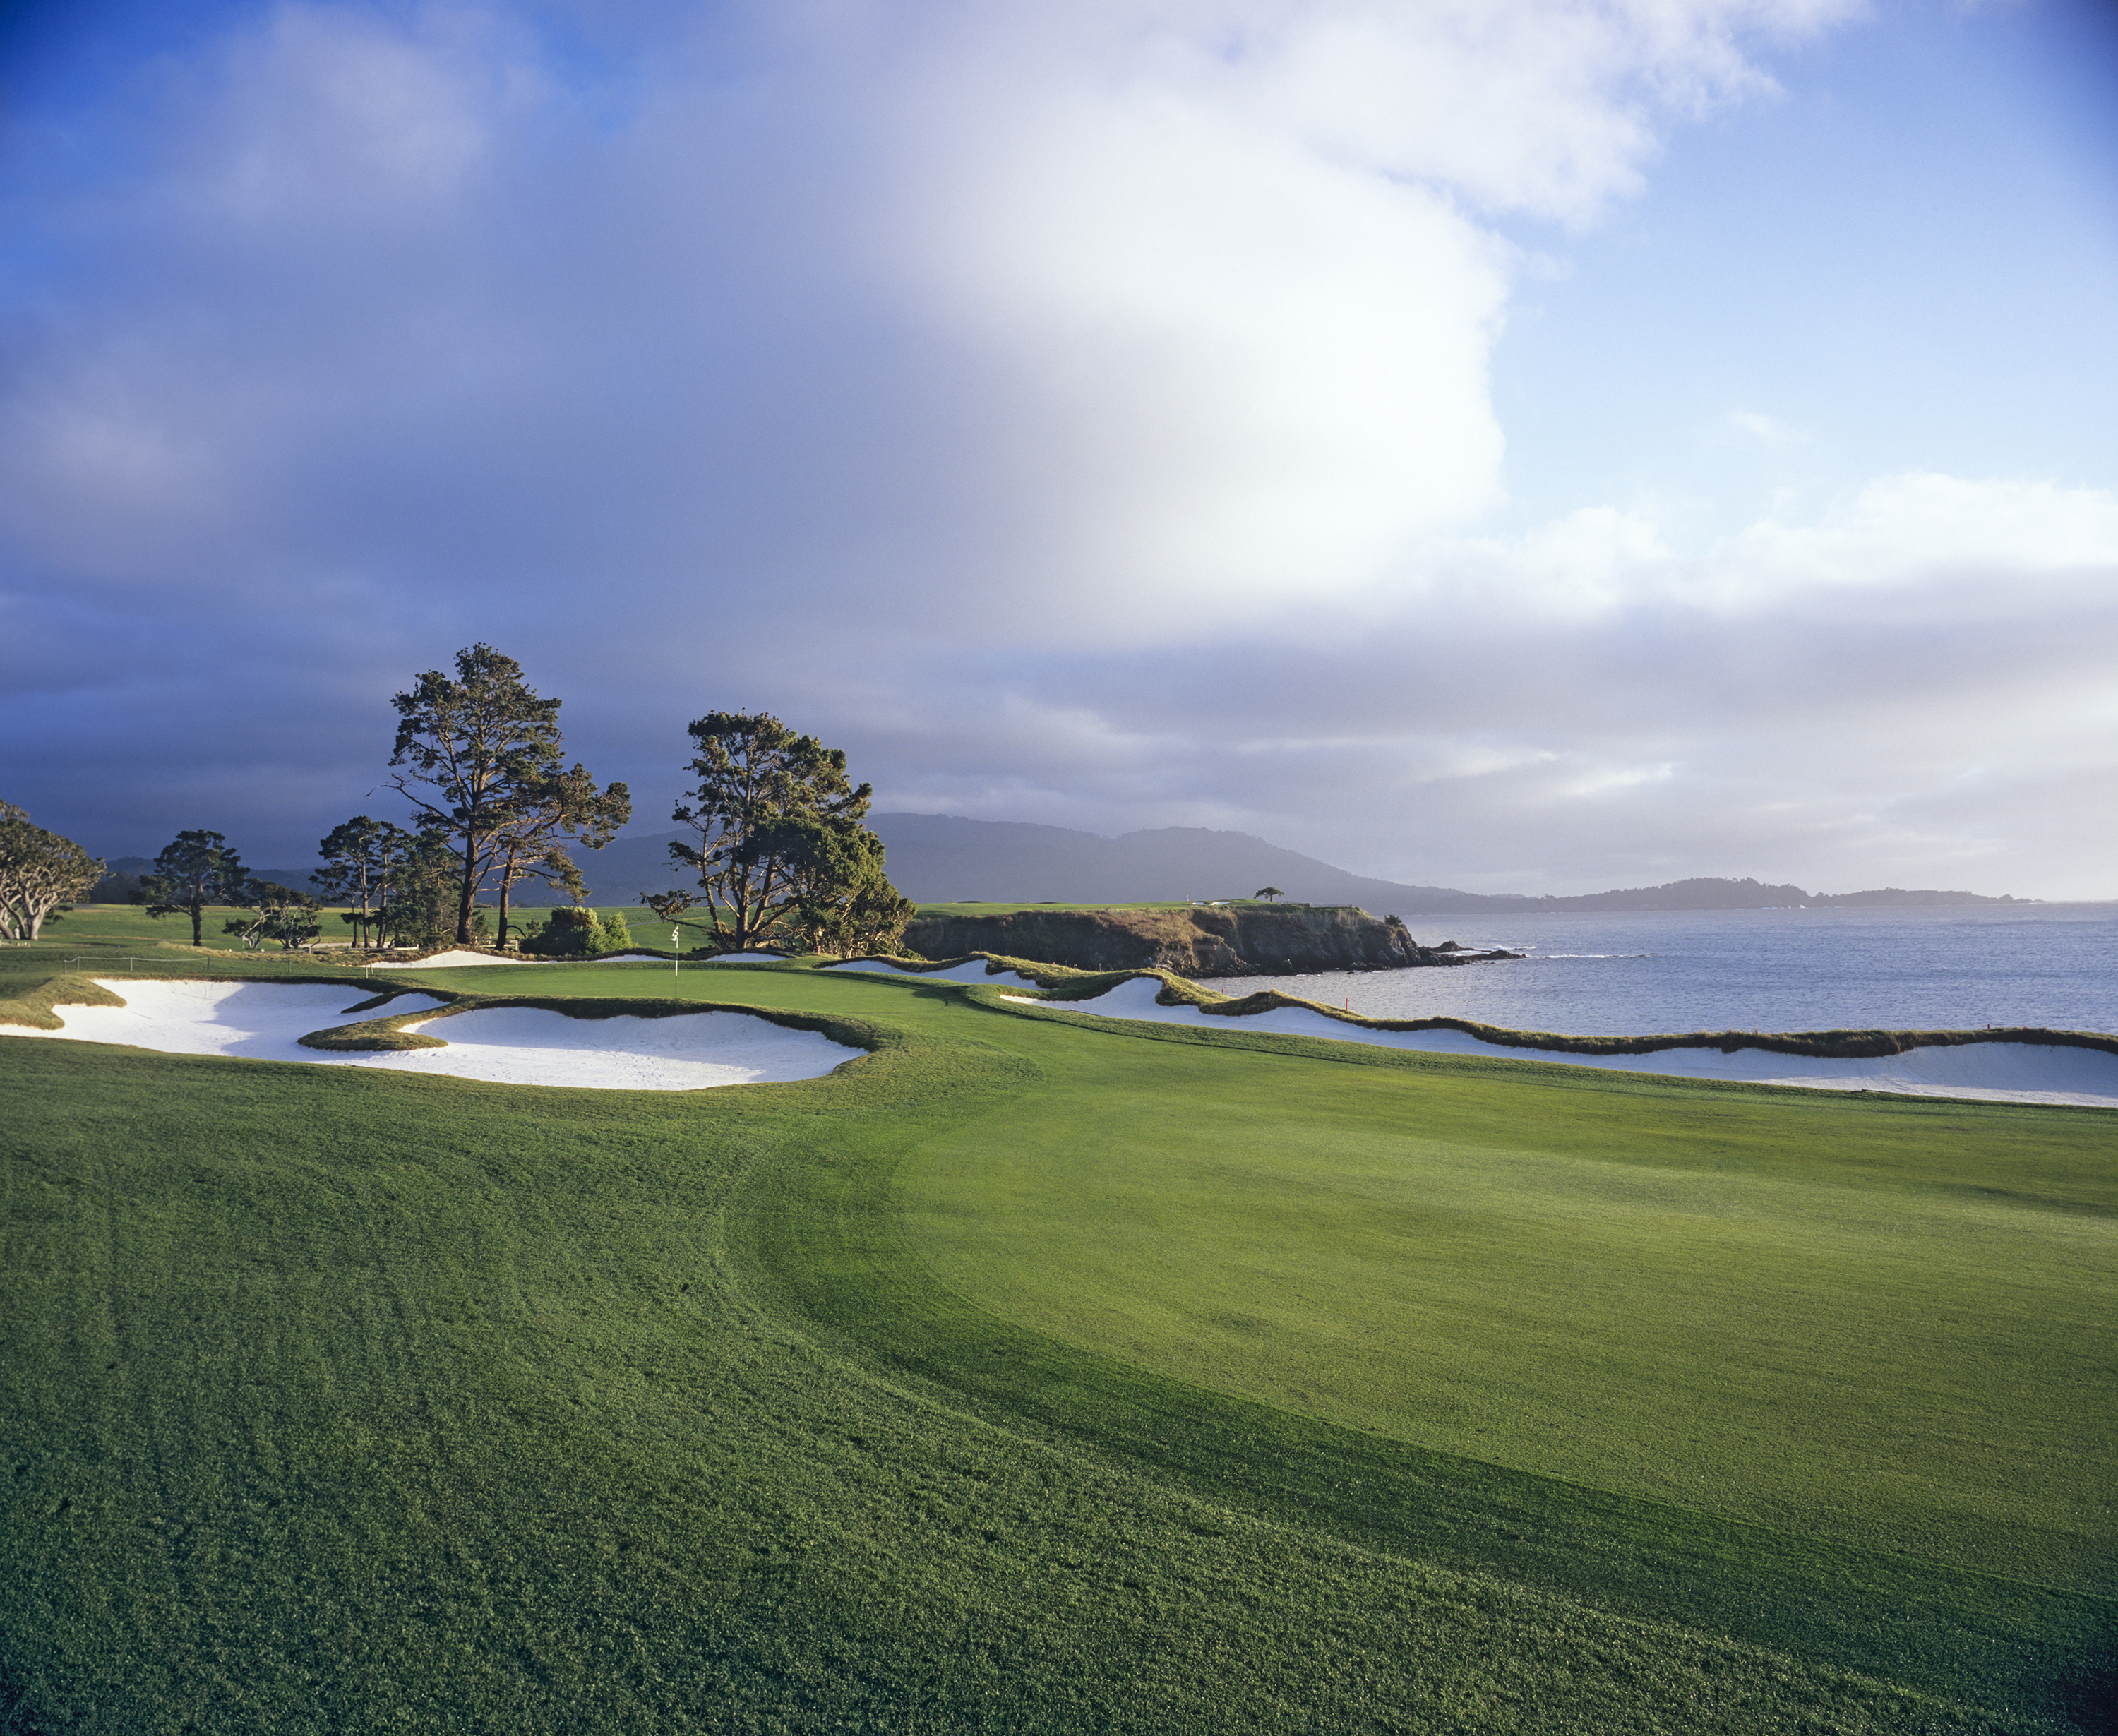 How Pebble Beach Tests the Best: A Tour of the Smallest